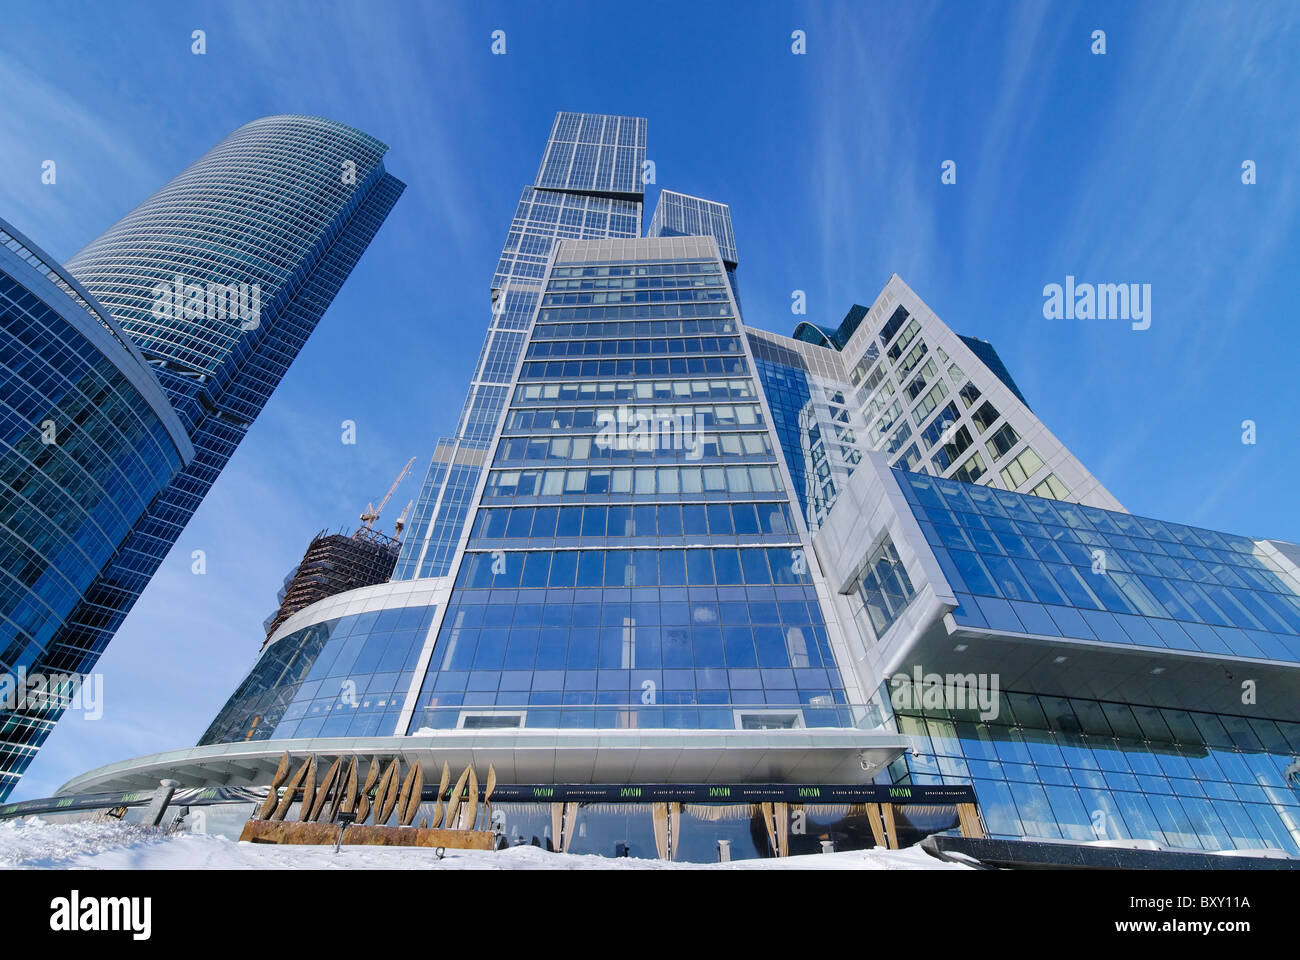 Skyscrapers of the Moscow International Business Center - Stock Image